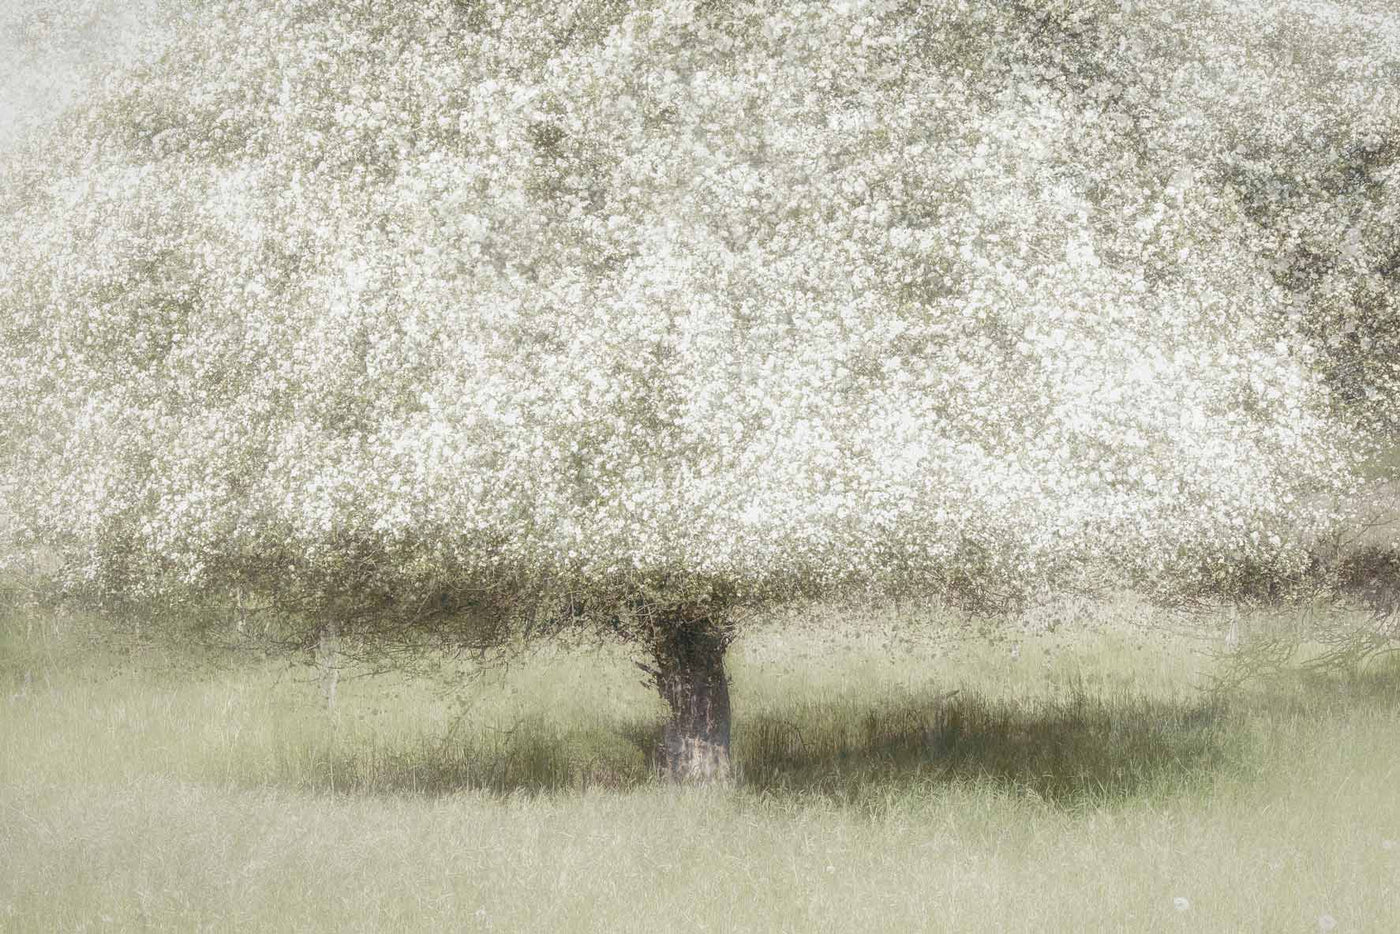 nature & landscapes wallpaper murals.